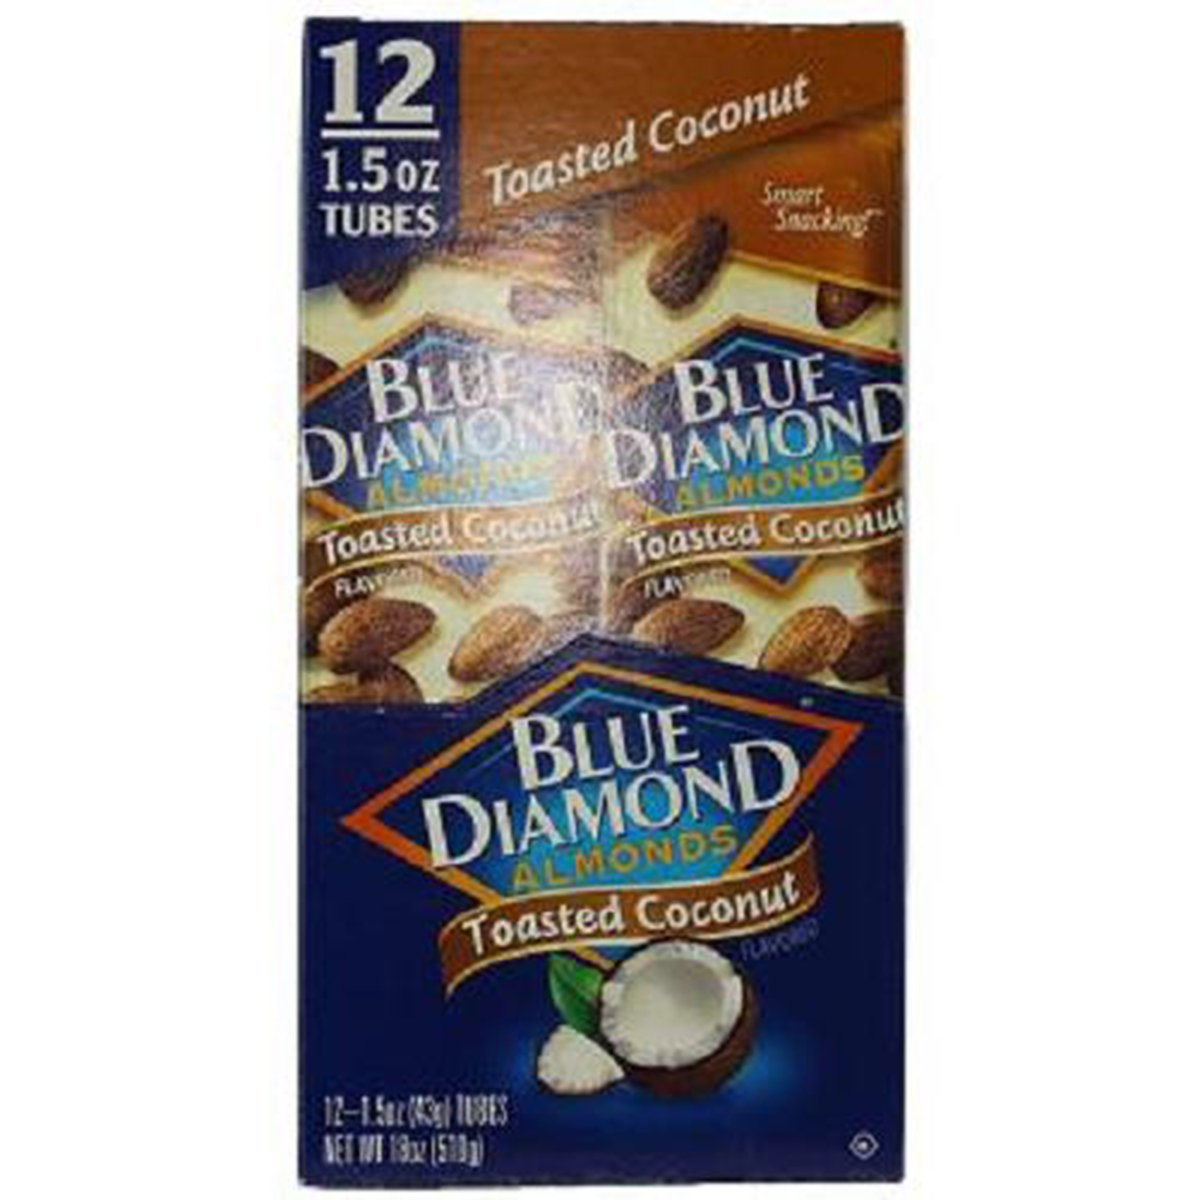 Product Of Blue Diamond, Almonds Toasted Coconut Tube, Count 12 (1.5 oz) - Nut & Dry Fruit / Grab Varieties & Flavors by Product Of Blue Diamond (Image #1)